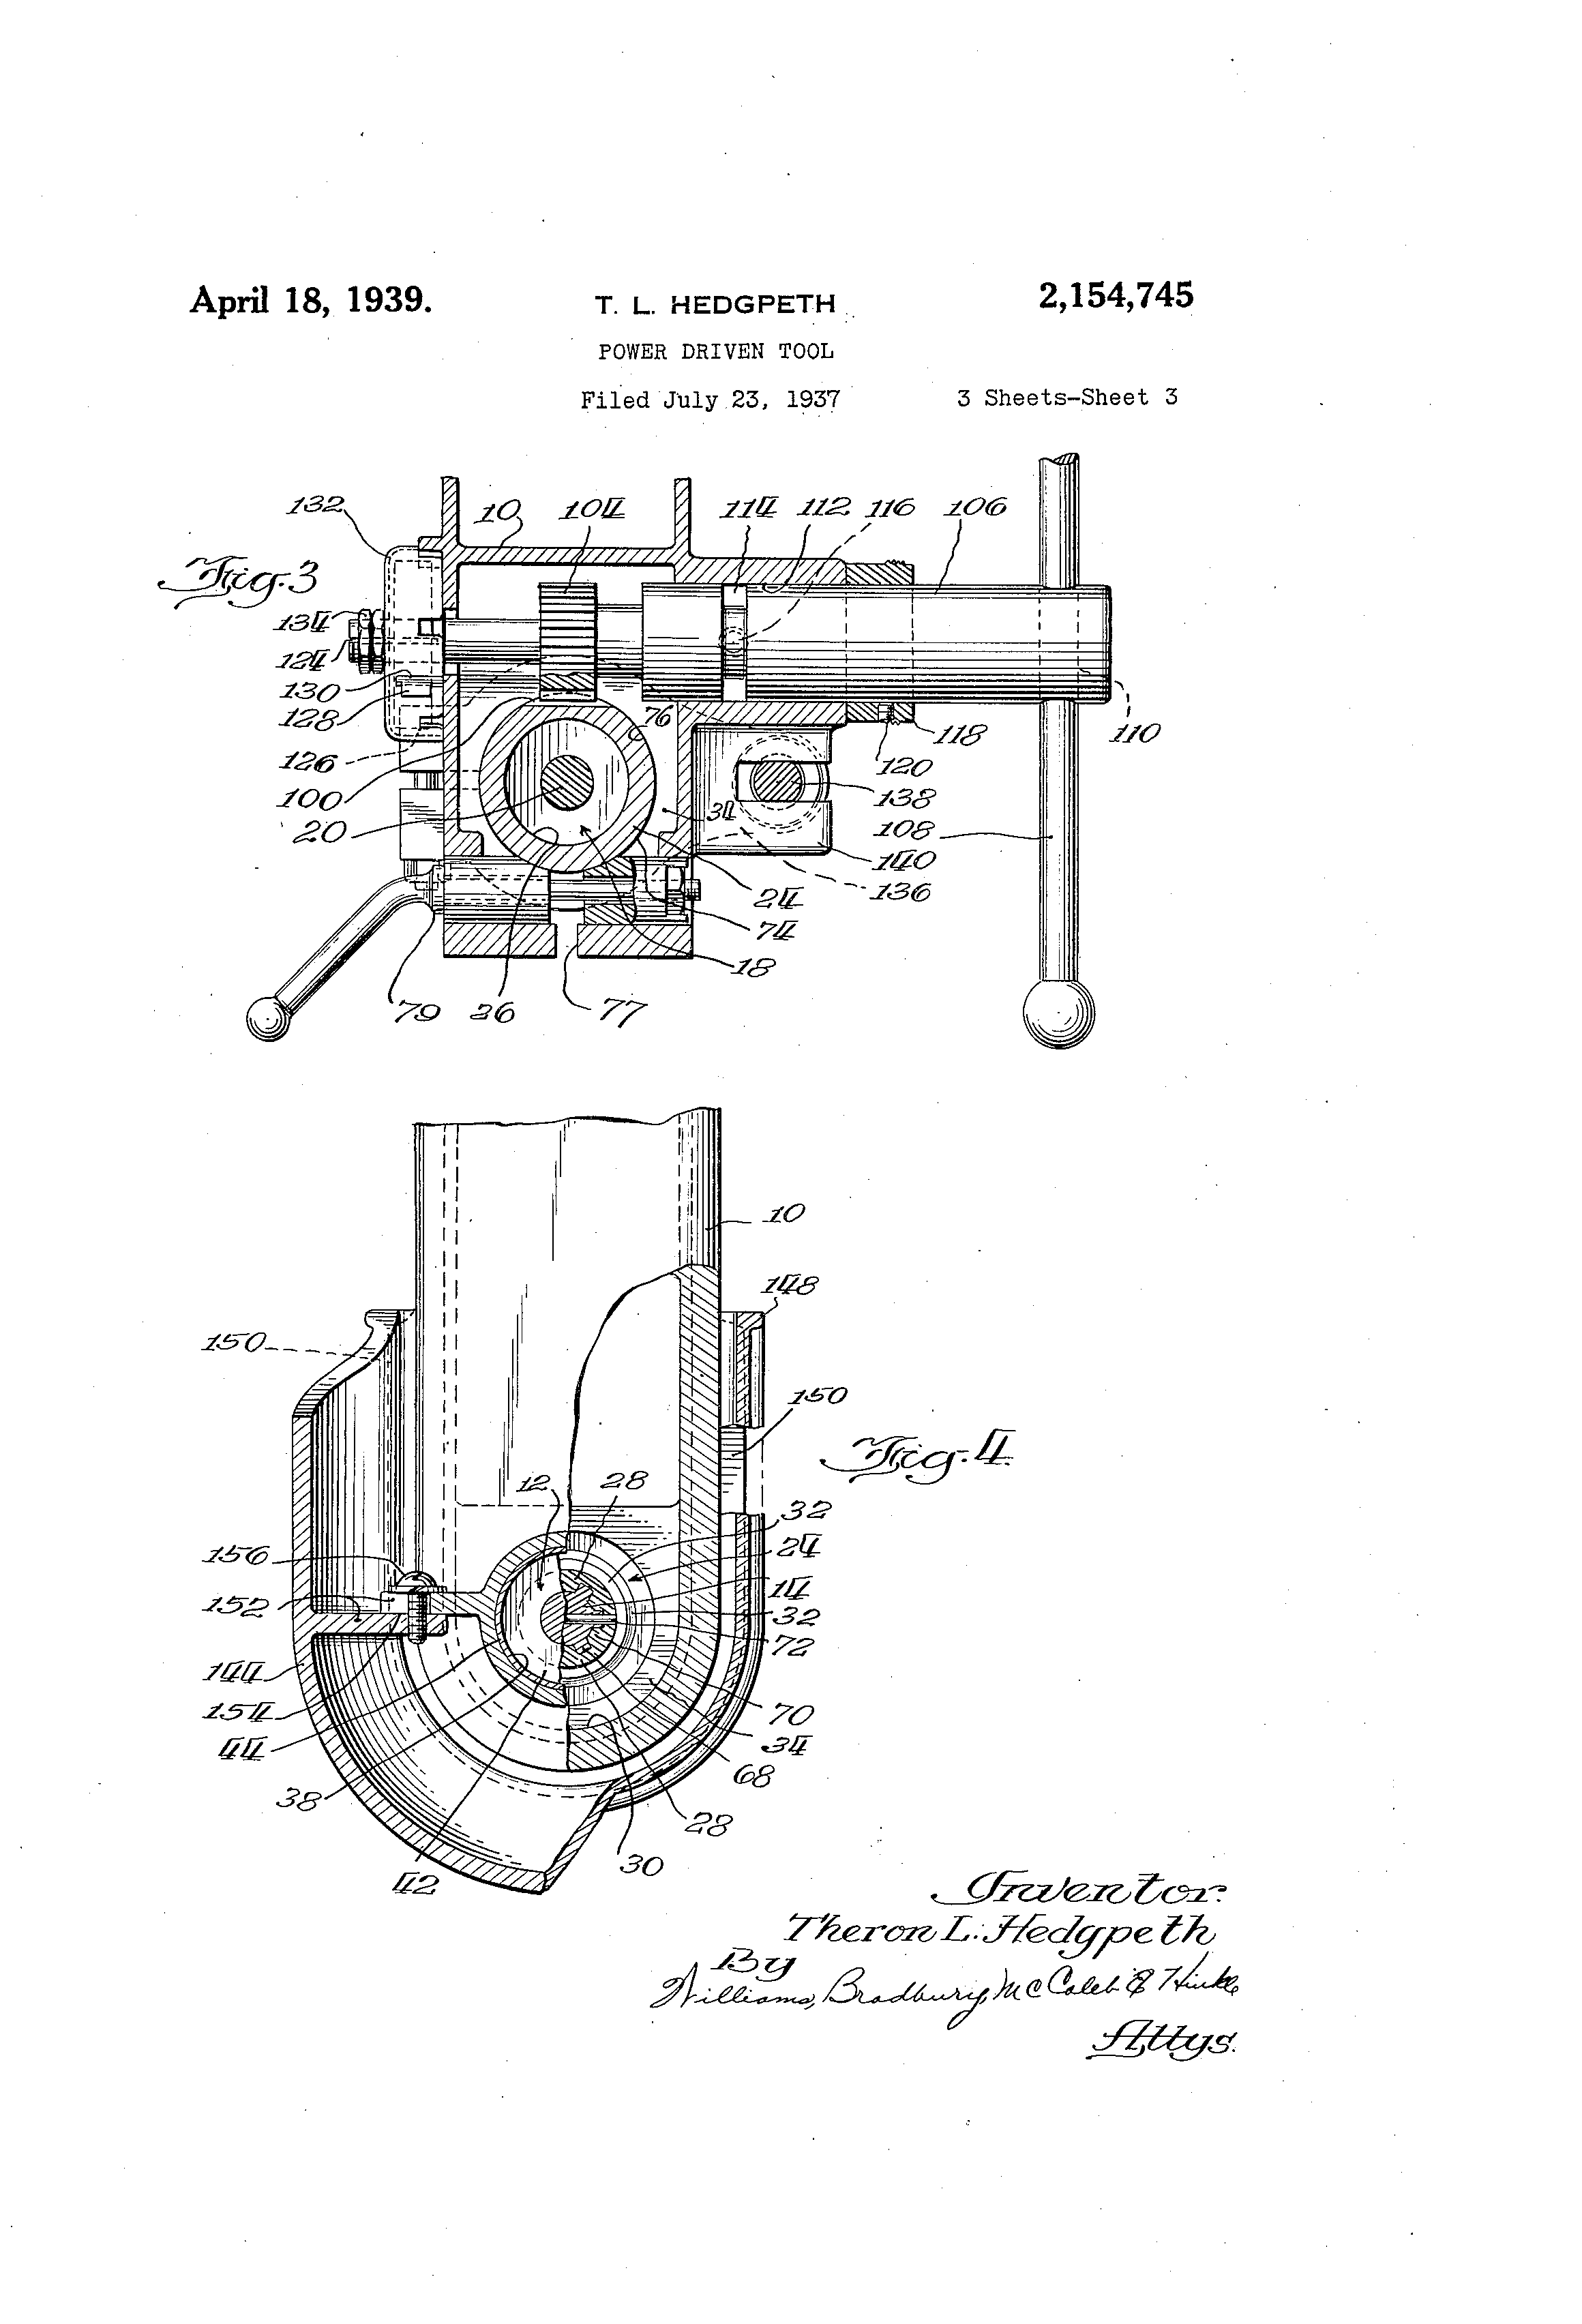 Patent US2154745 - Power driven tool - Google Patents